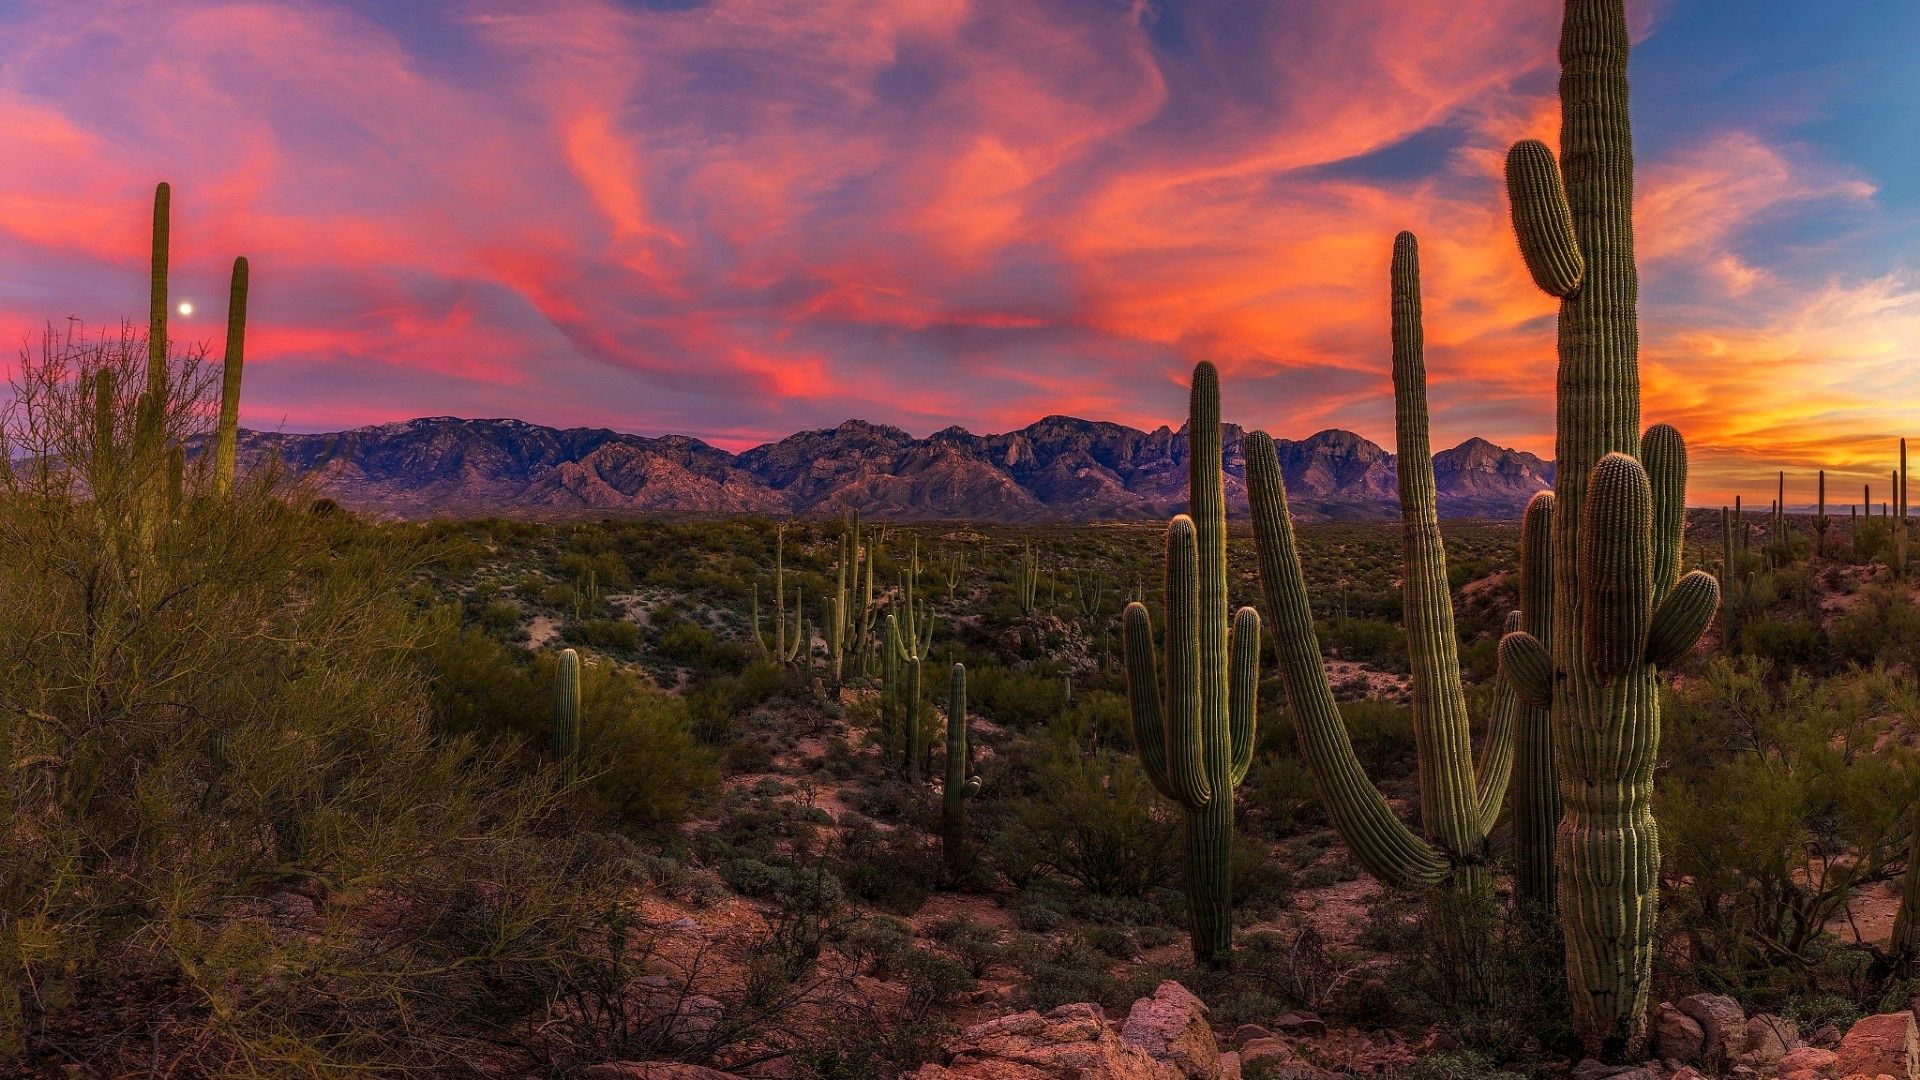 55 Saguaro National Monument Sunset Wallpapers   Download at 1920x1080